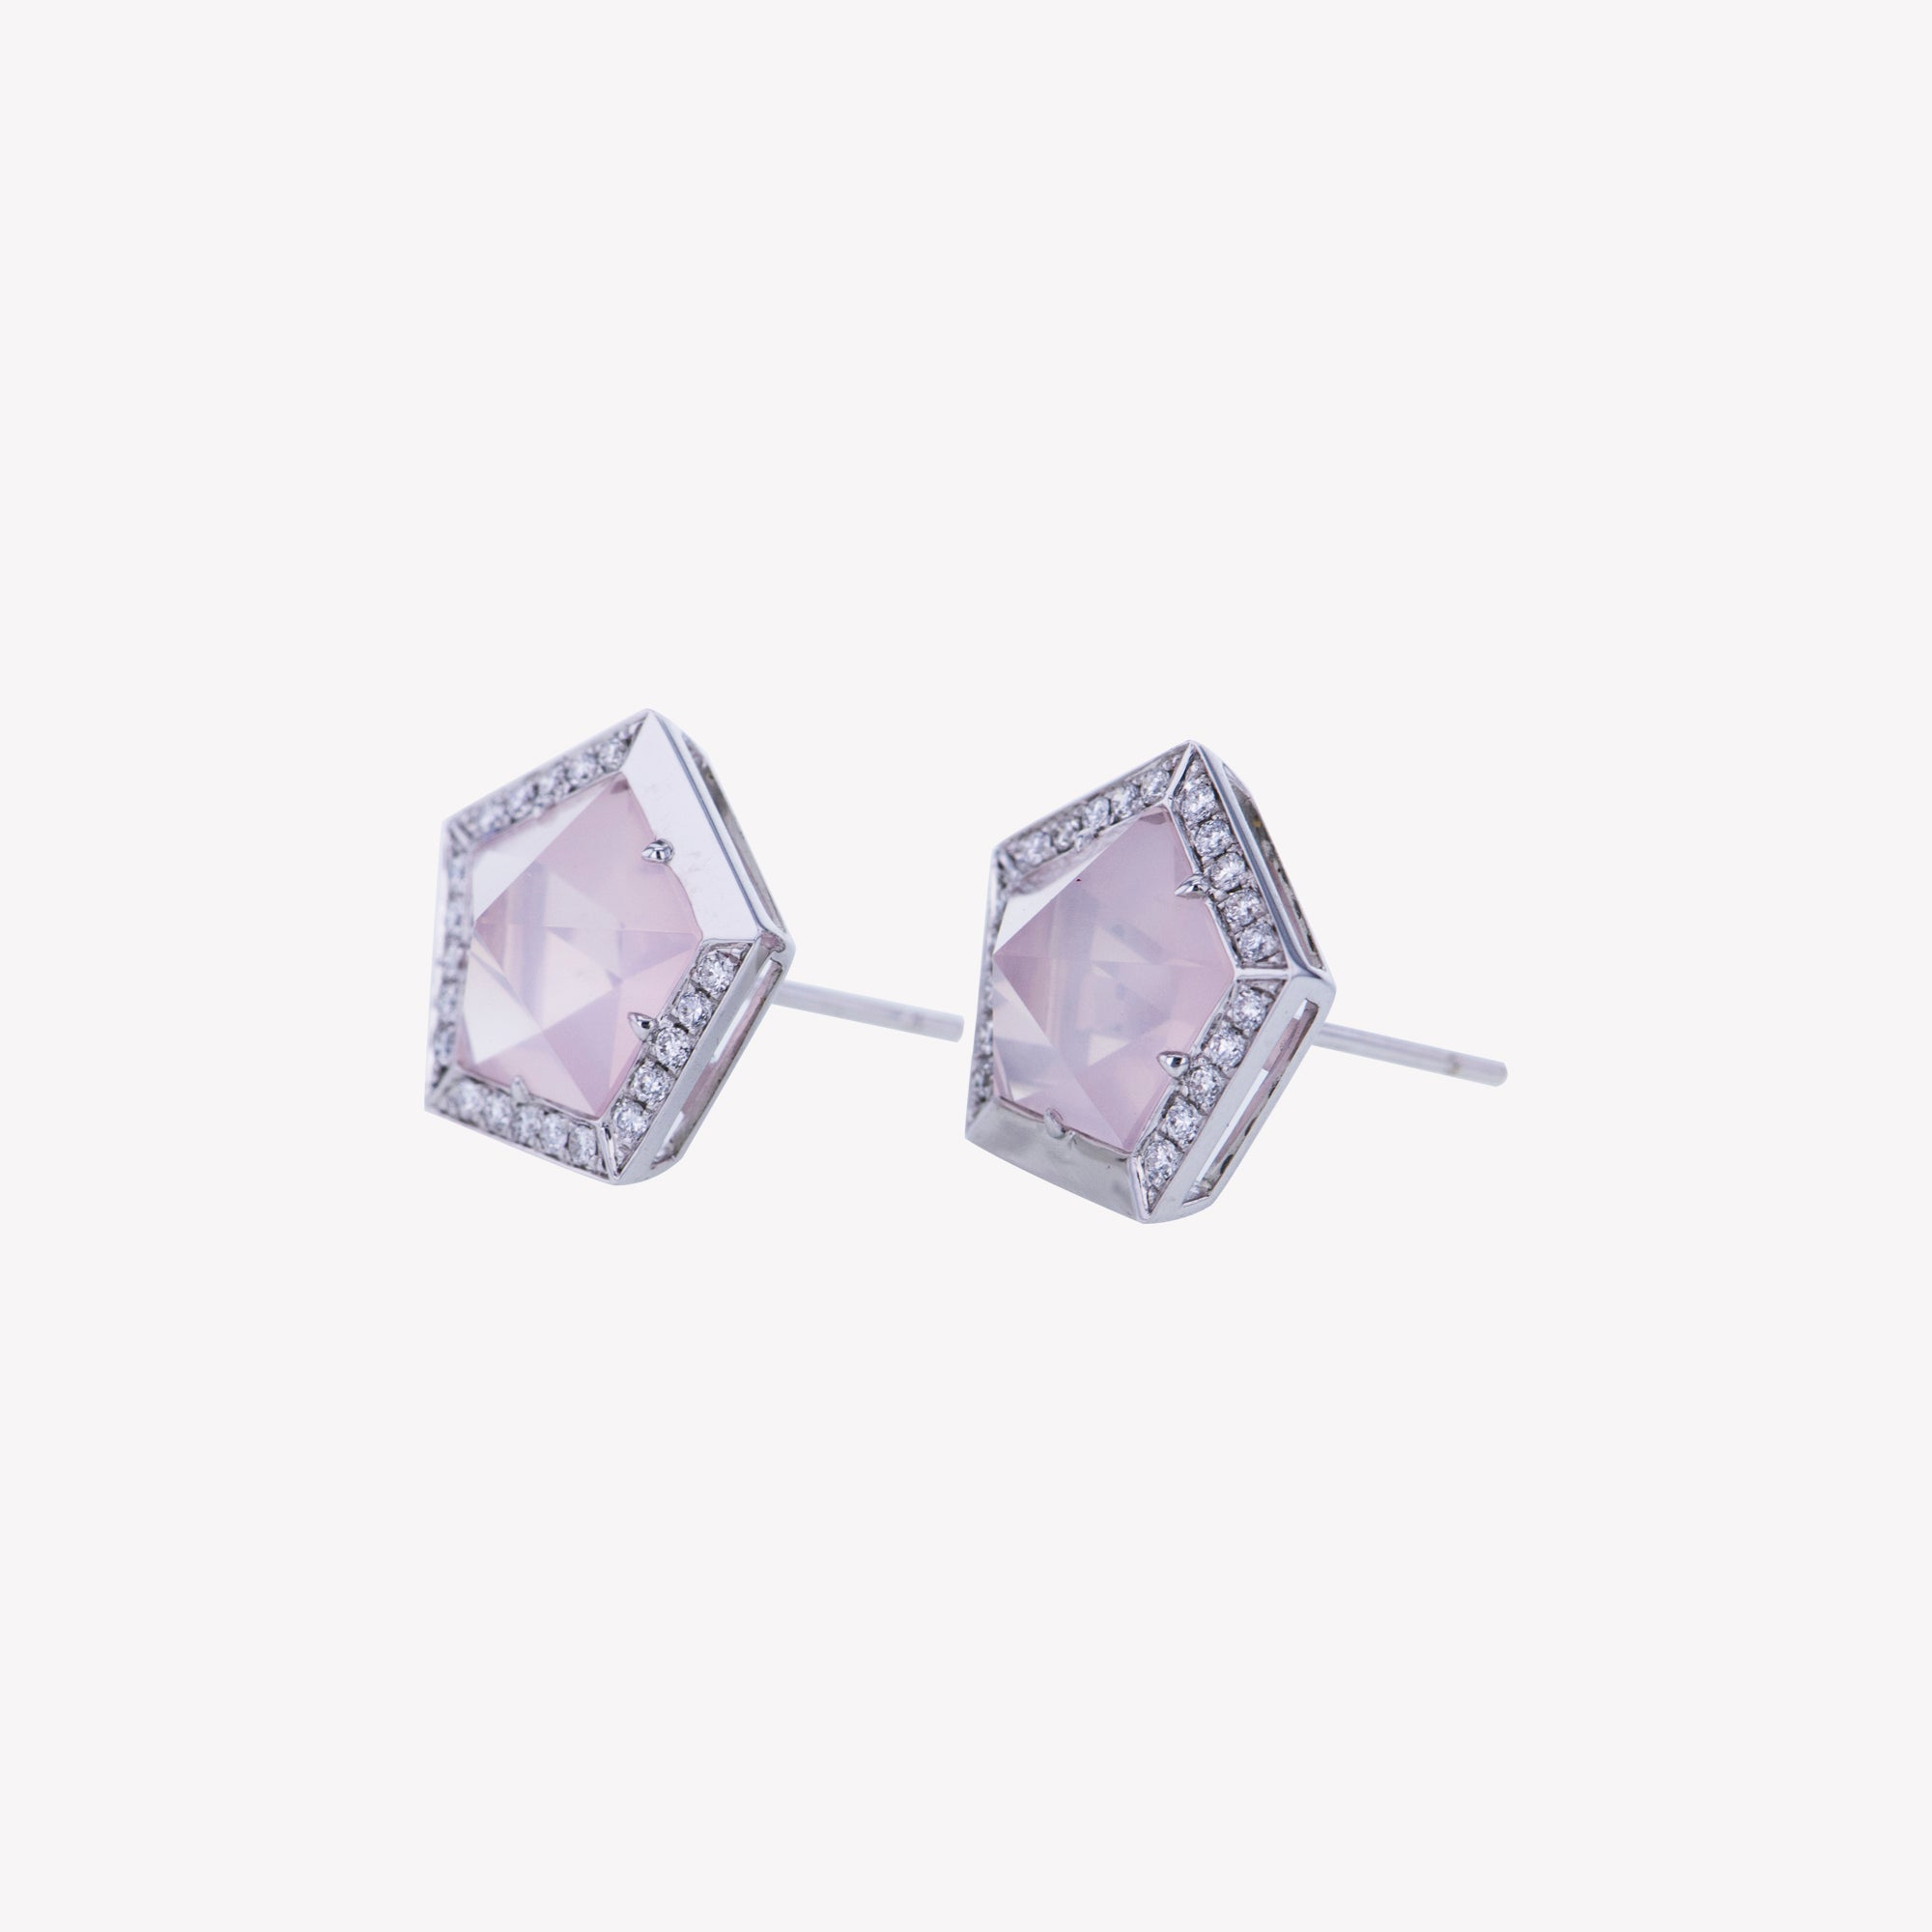 18K W/G Rose Quartz Diamond Earrings